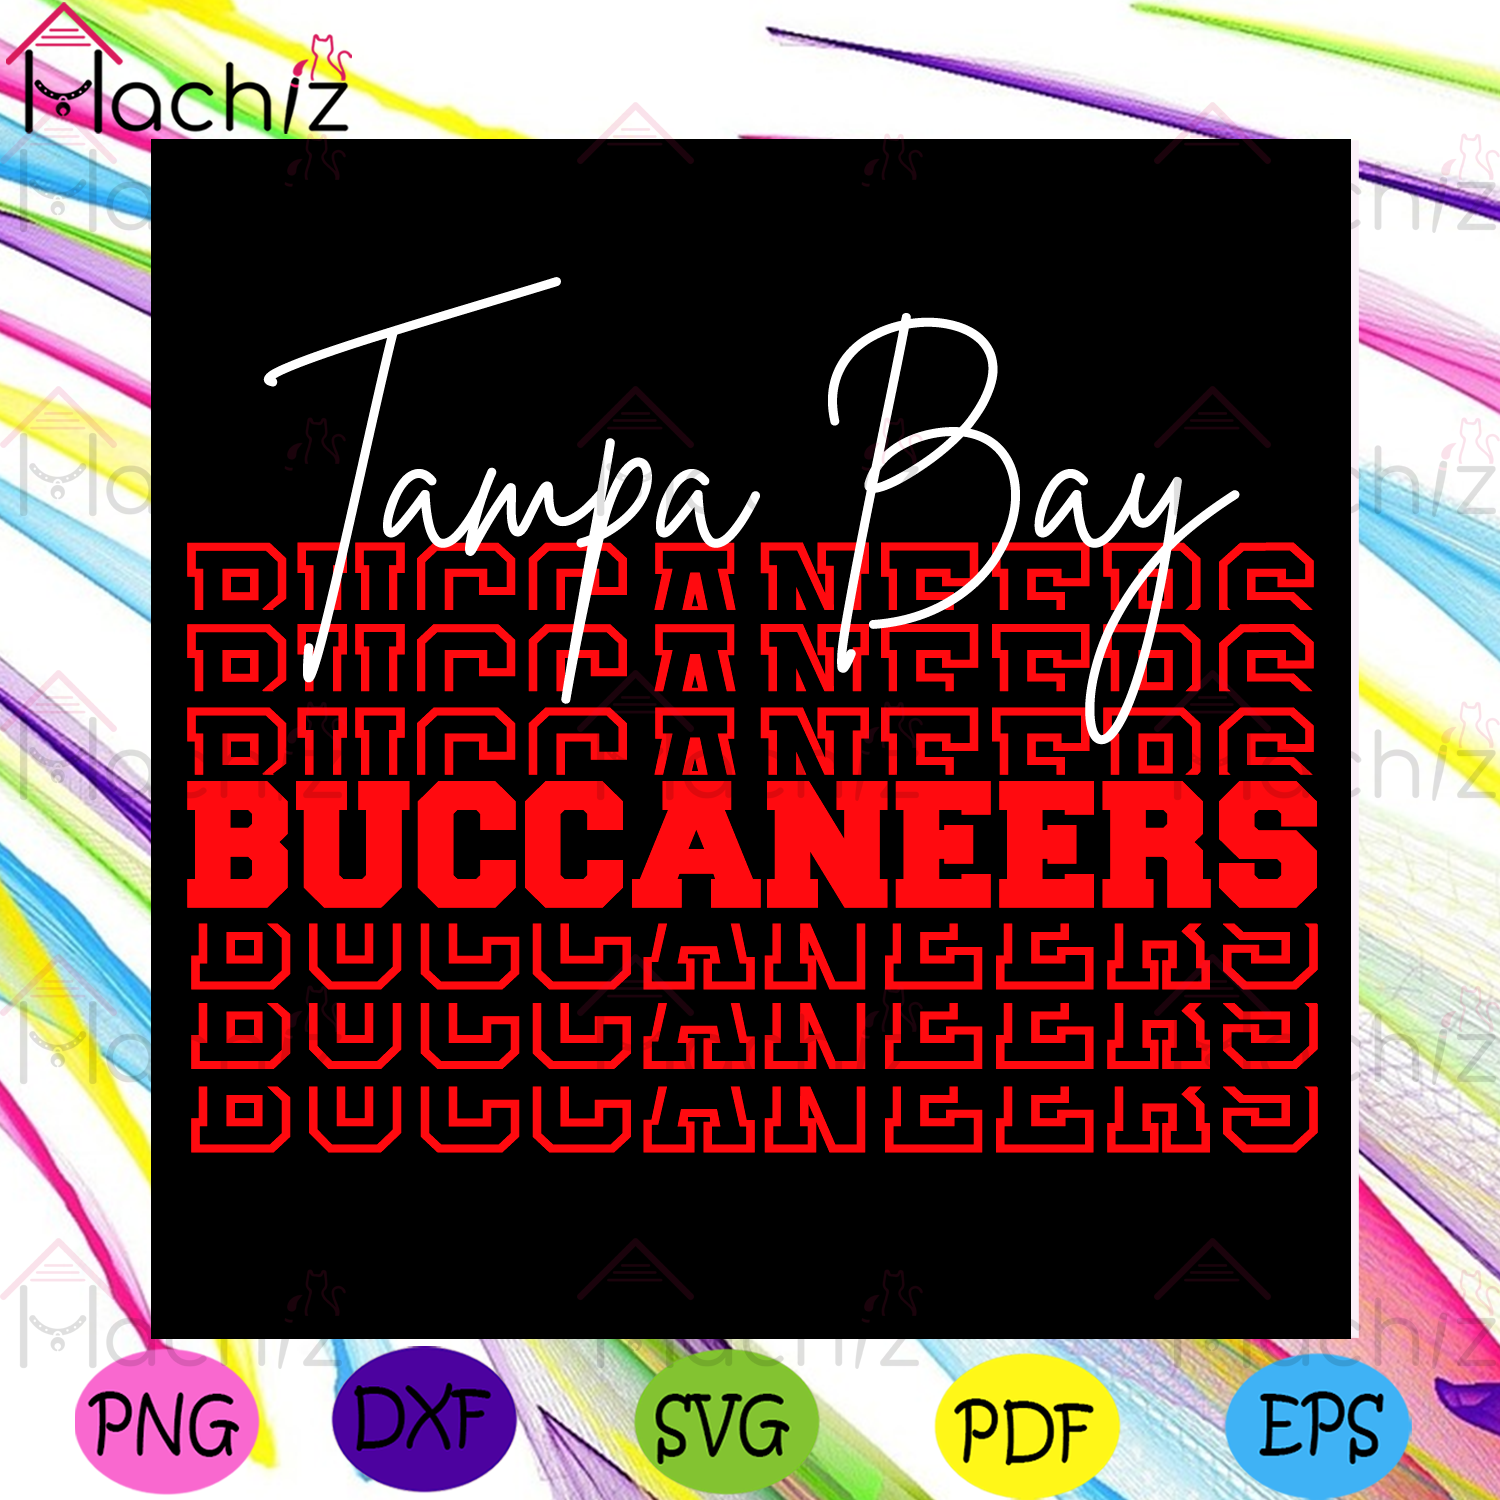 Tampa Bay Buccaneers Svg, Sport Svg, Tampa Bay Buccaneers Svg, Tampa Bay Buccaneers Logo Svg, Buccaneers Lovers Svg, Buccaneers Fan Svg, Buccaneers Svg, Buccaneers Gifts Svg, NFL Svg, Super Bowl 2021 Svg, Football Svg